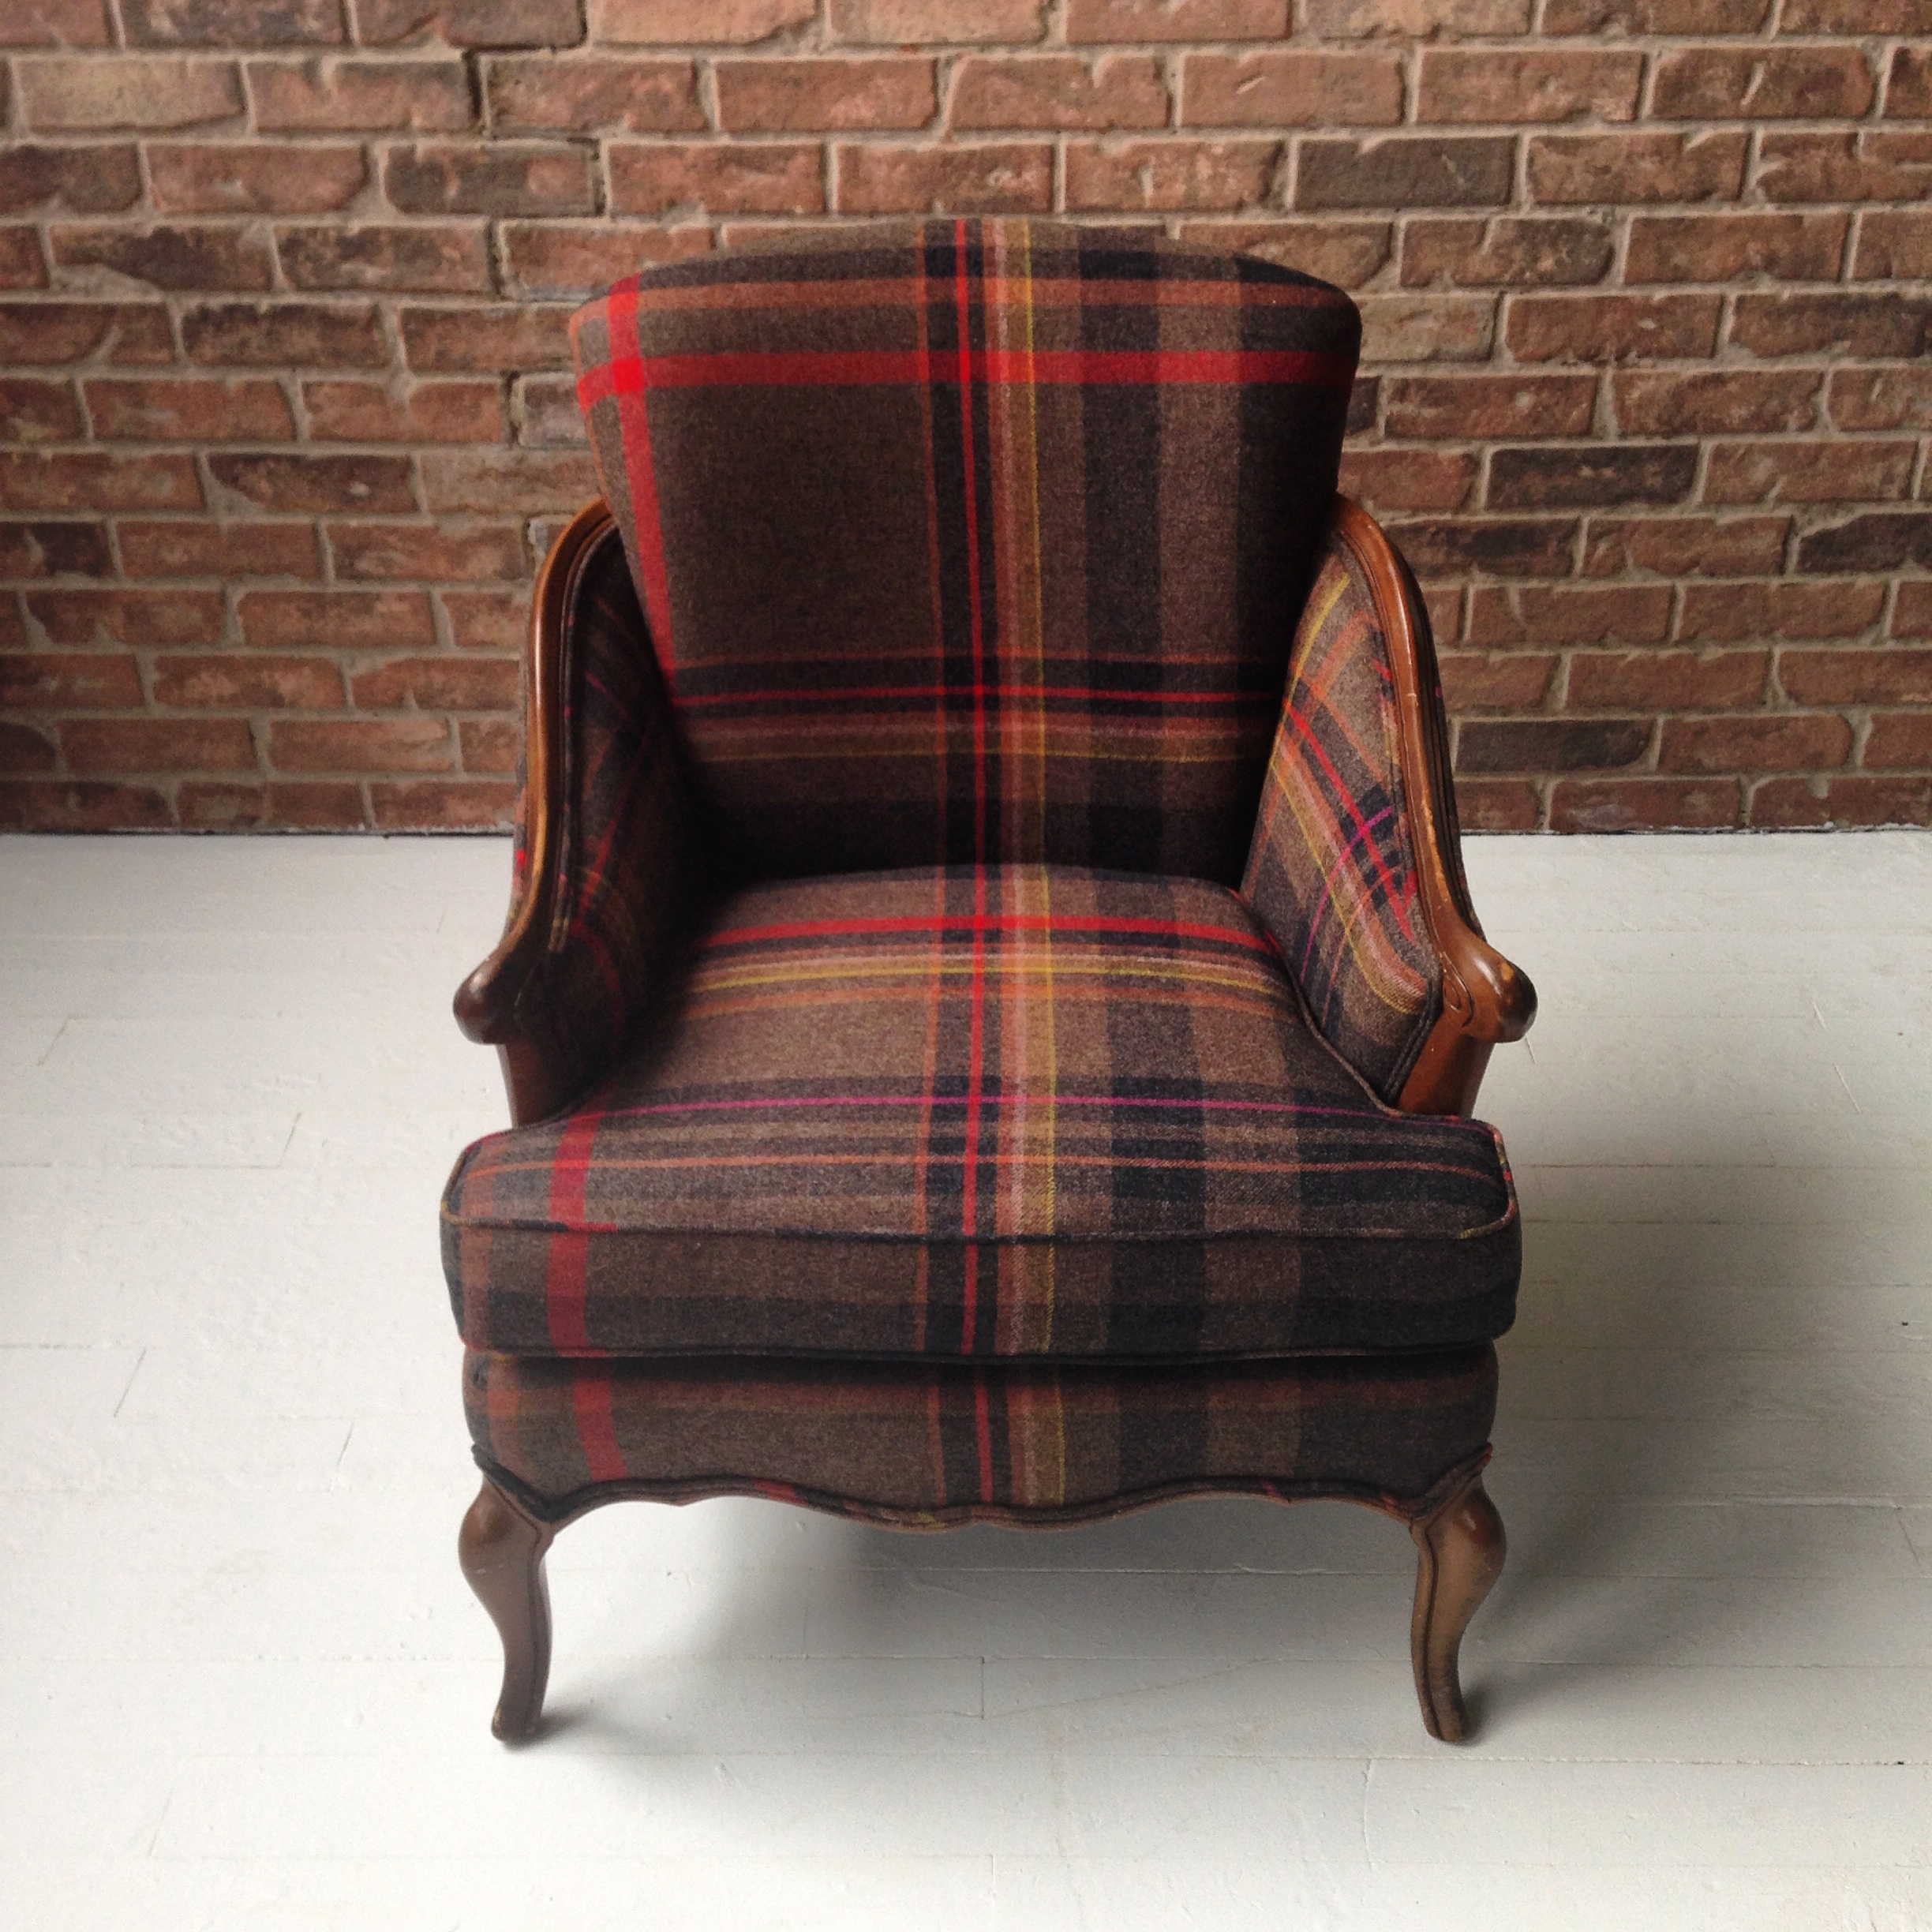 Recovered Interior Plaid Armchair